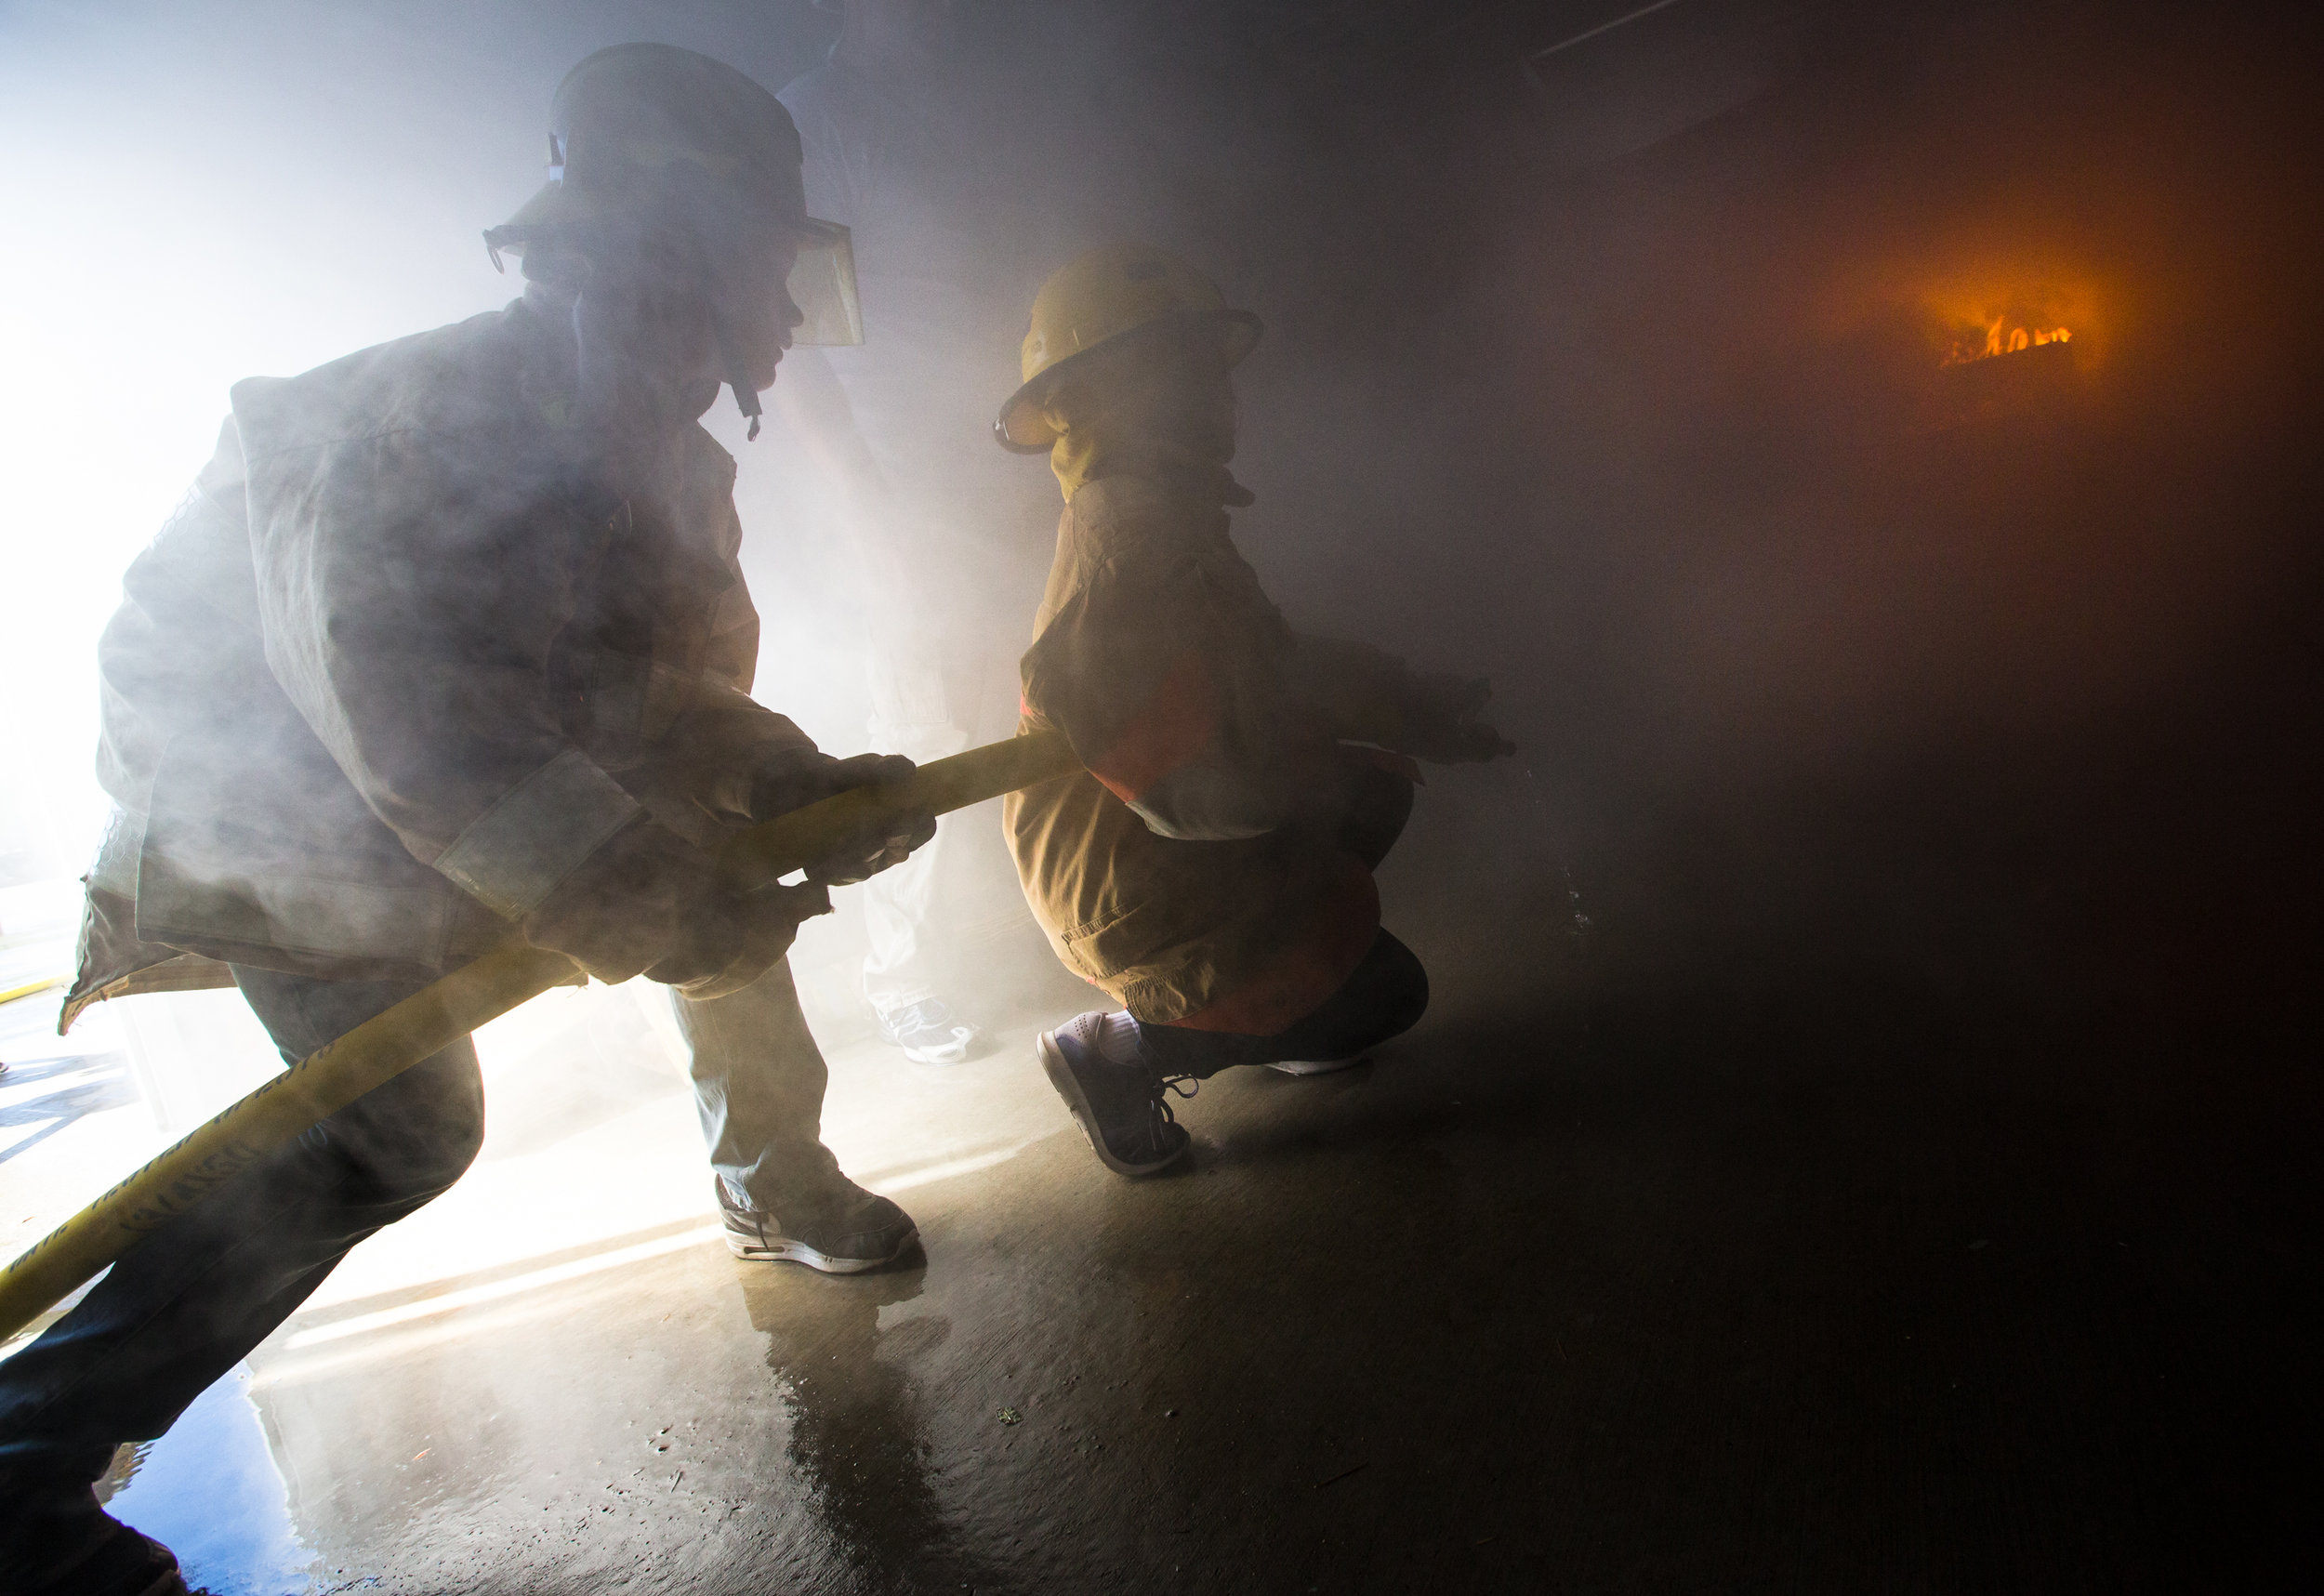 Jake Skogman, 11, (left) and Sarah Anderson, 12, prepare to put out a building fire during the Lynnwood Kids Fire Camp on Thursday. Members of the Lynnwood Fire Department organize group activities for the kids that promote teamwork, including a ladder walk, extinguishing fires and saving a life with ropes.